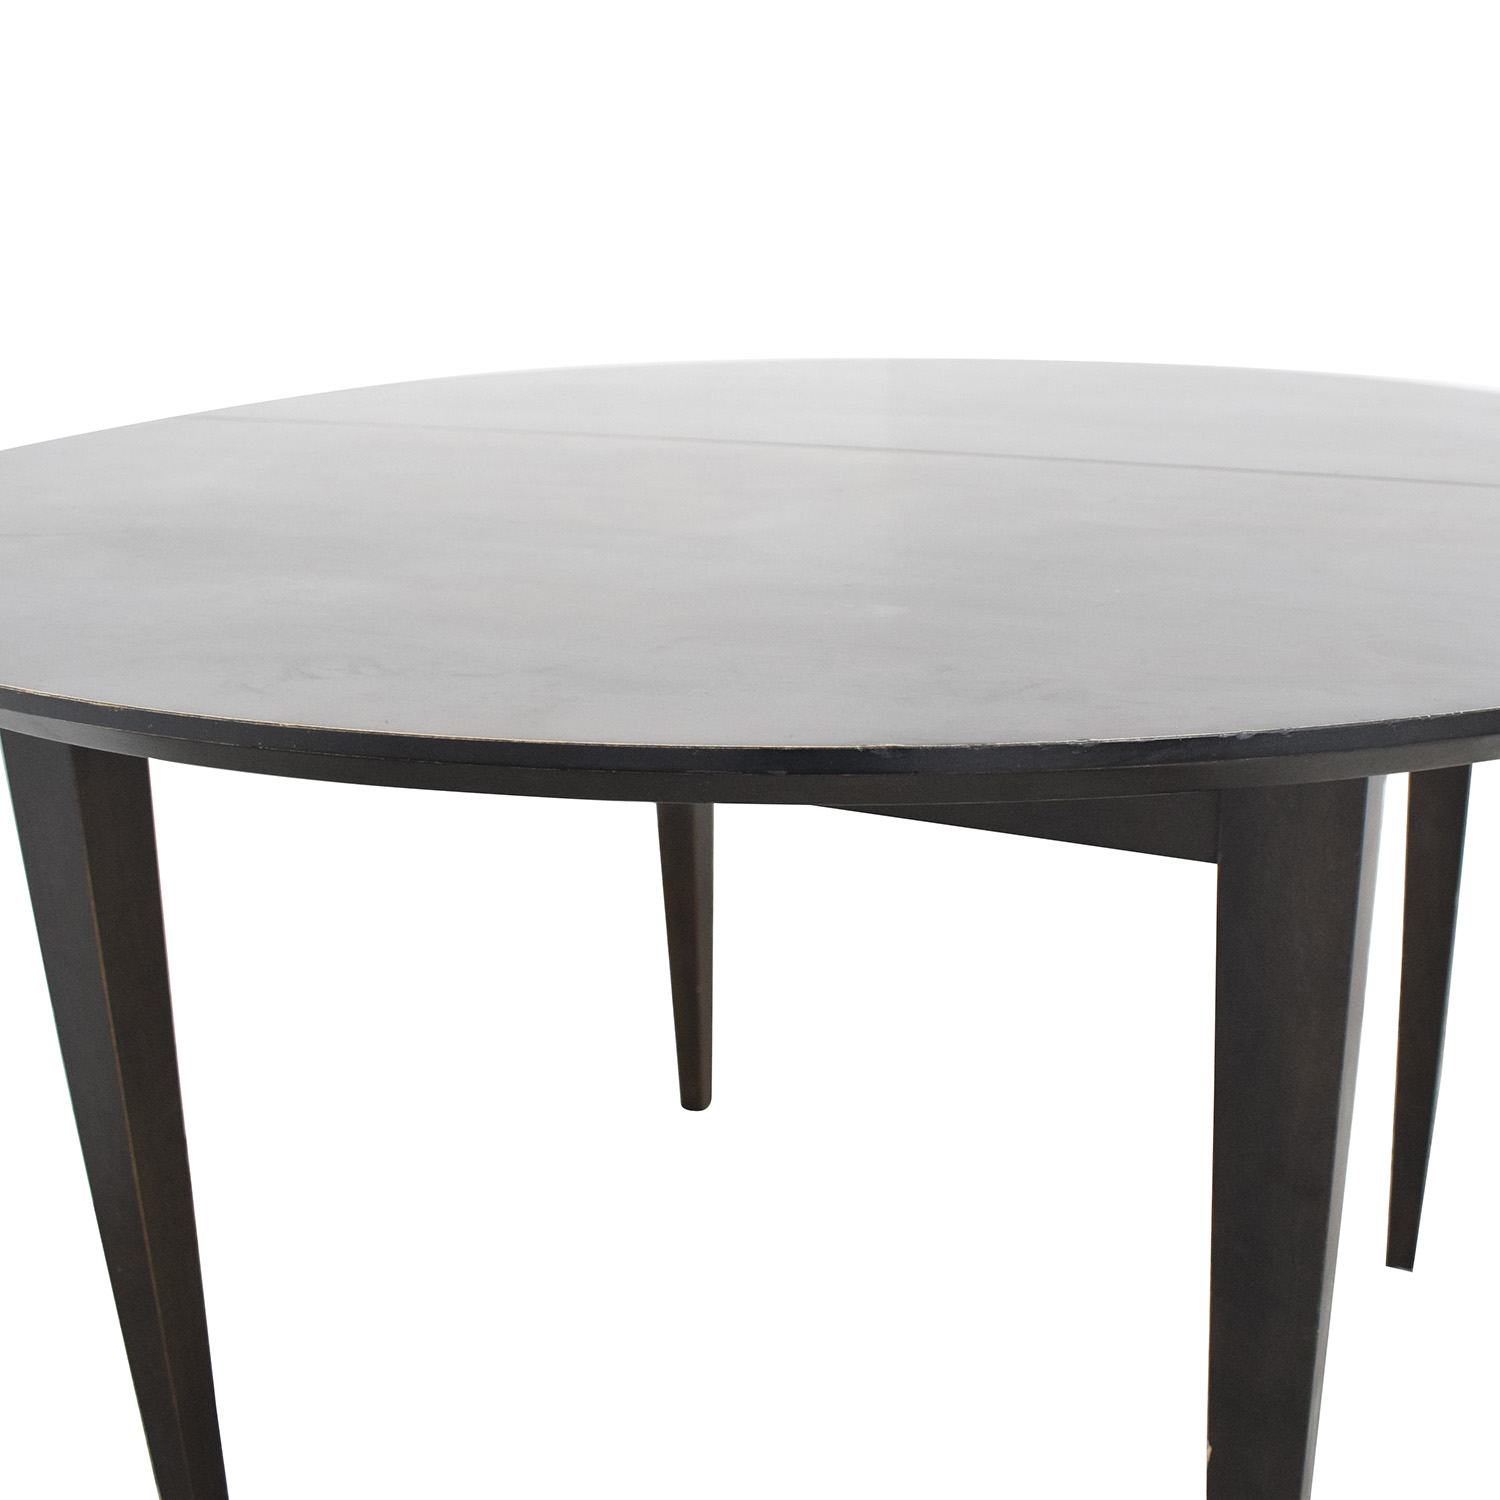 Room & Board Room & Board Adams Round Extension Table for sale